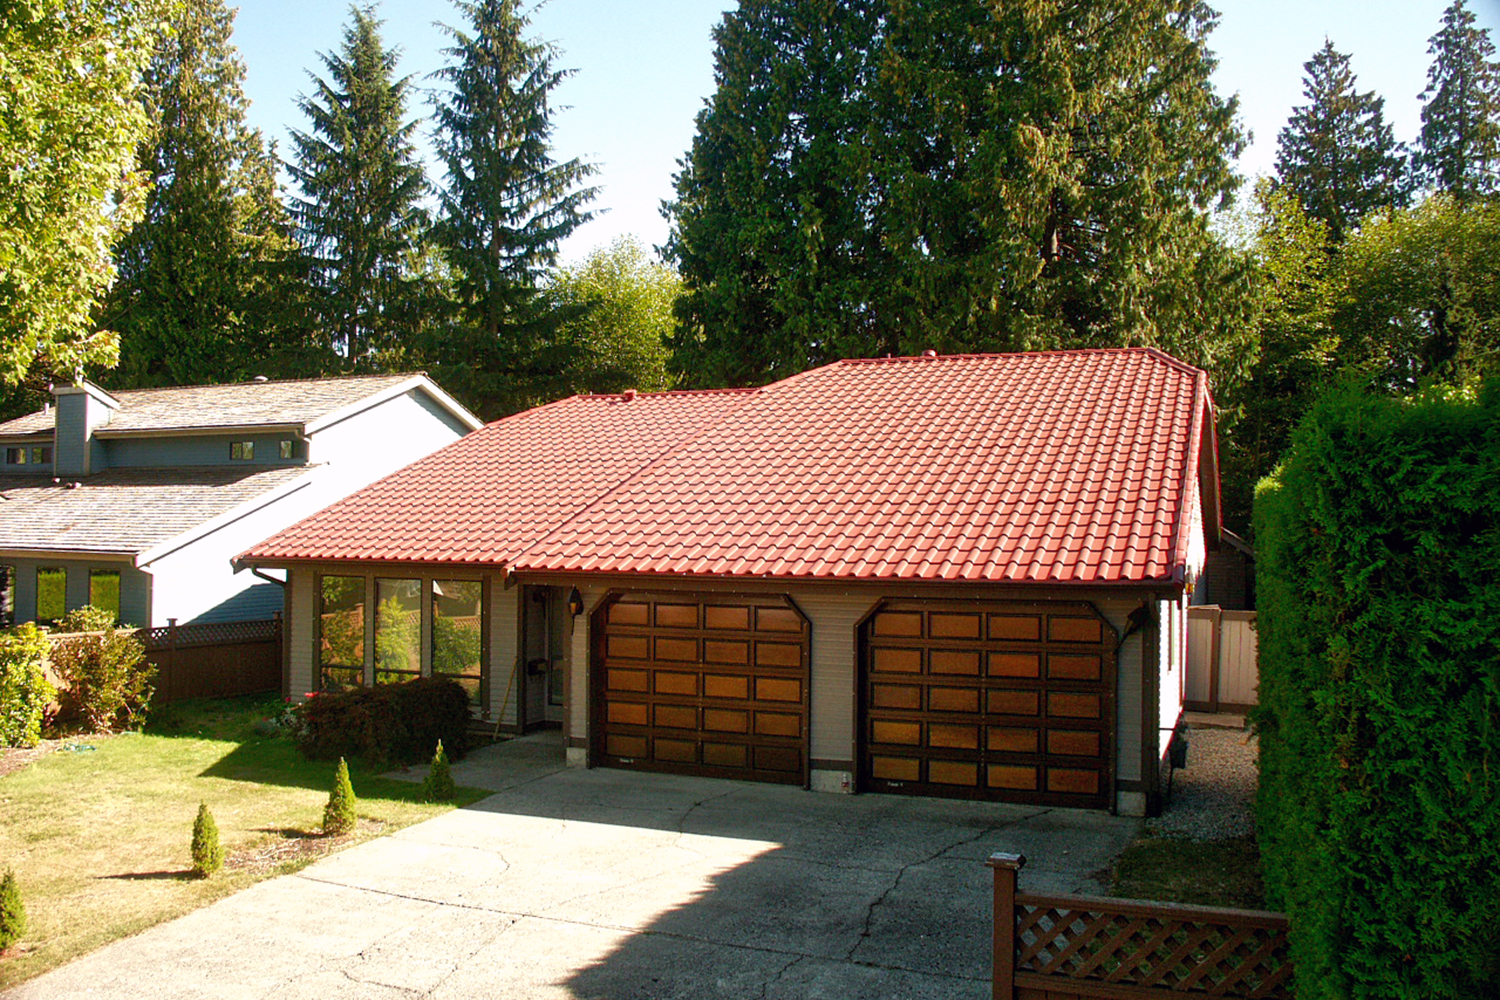 tile red metal mediterranean tile roof shed roof